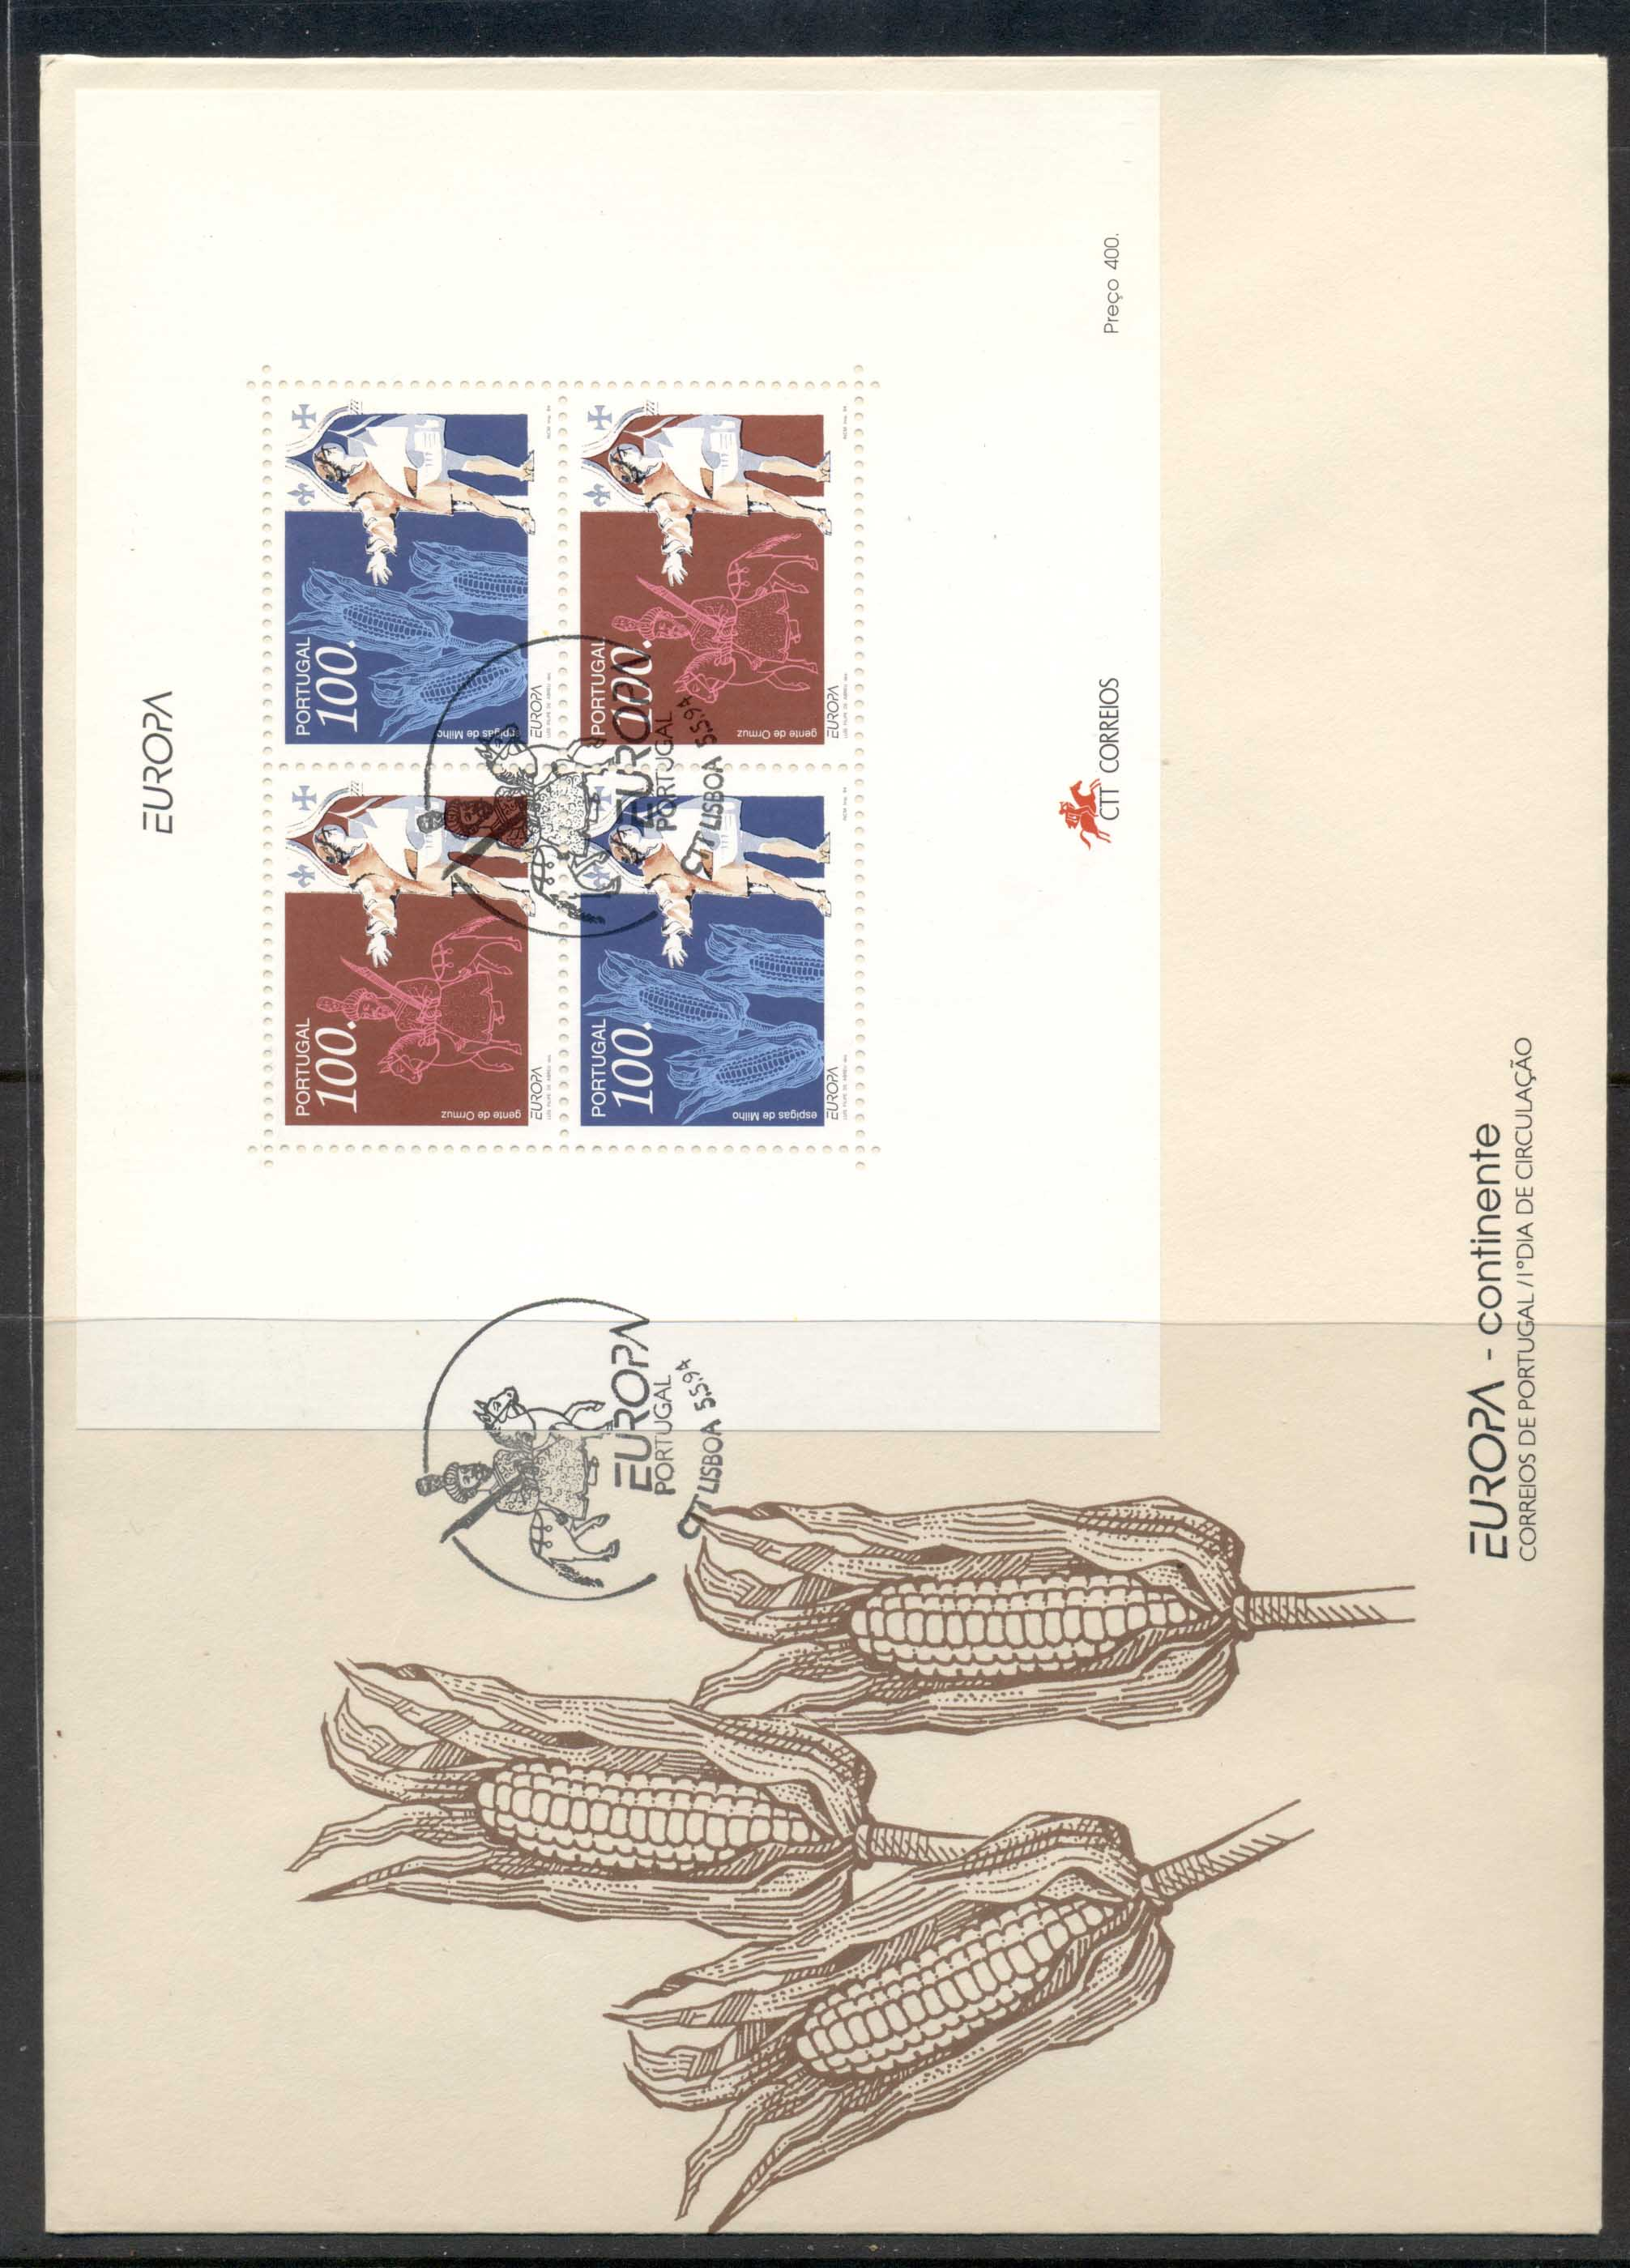 Portugal 1994 Europa Scientific Discoveries XLMS FDC